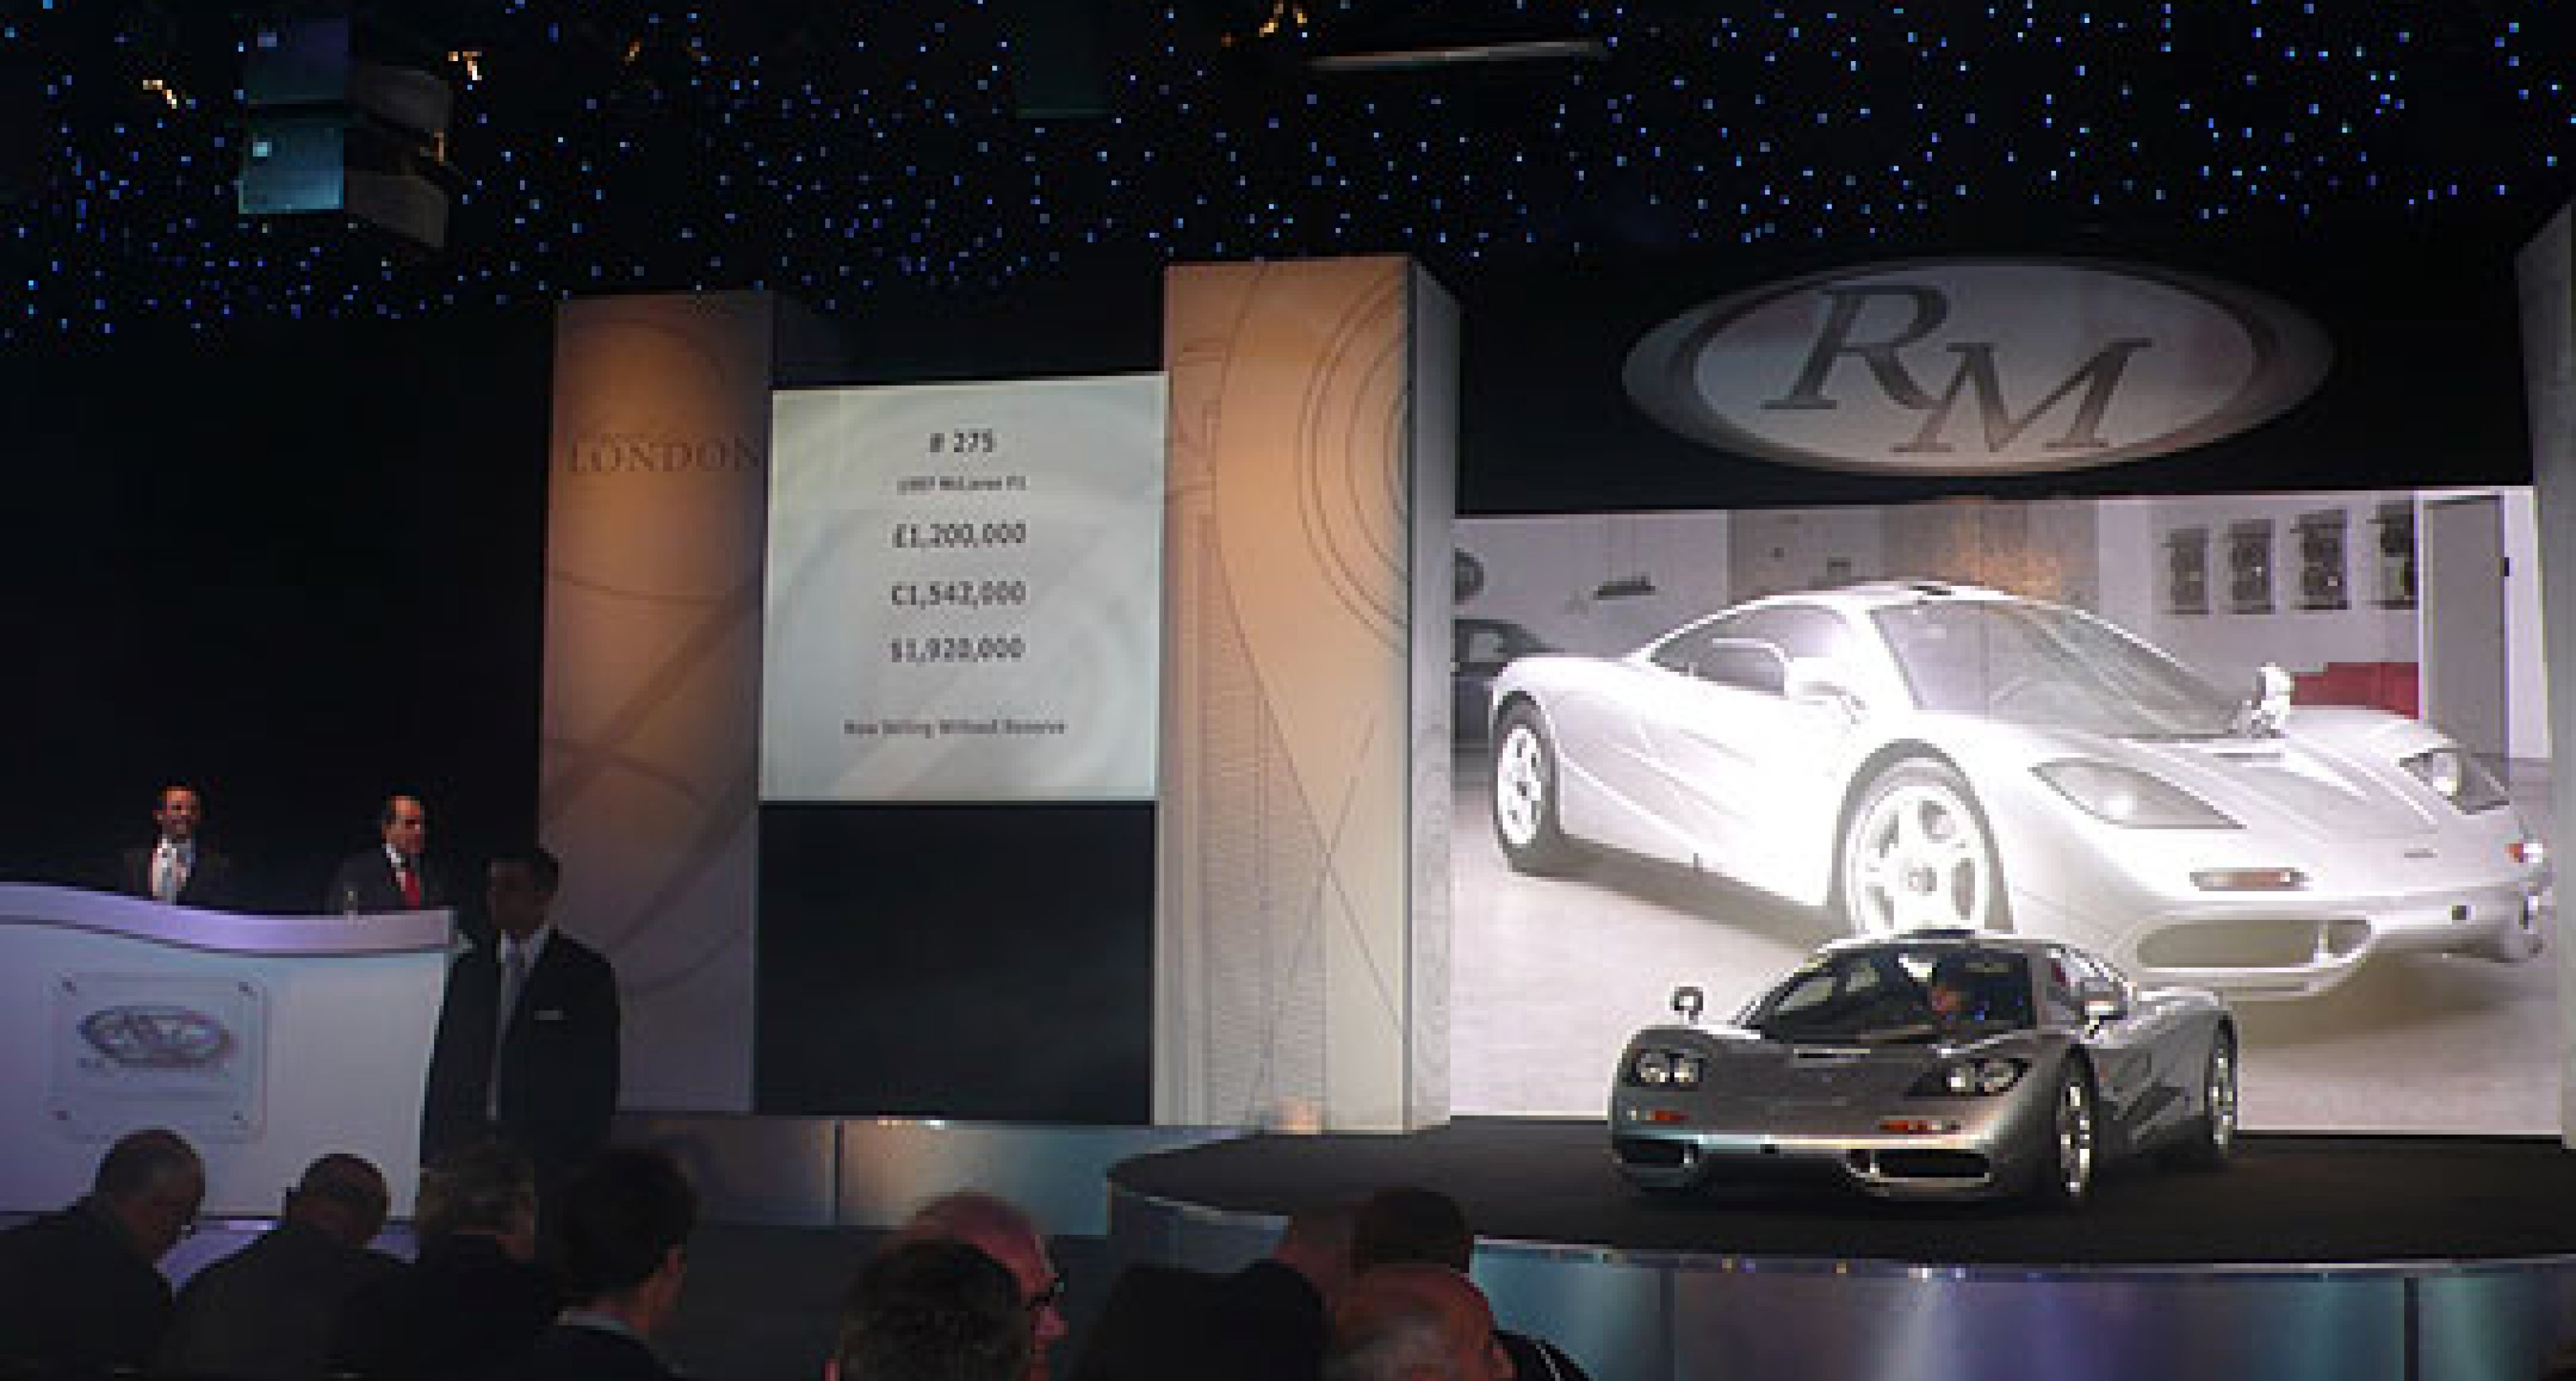 RM Auctions - Automobiles of London 29th October 2008 - Review